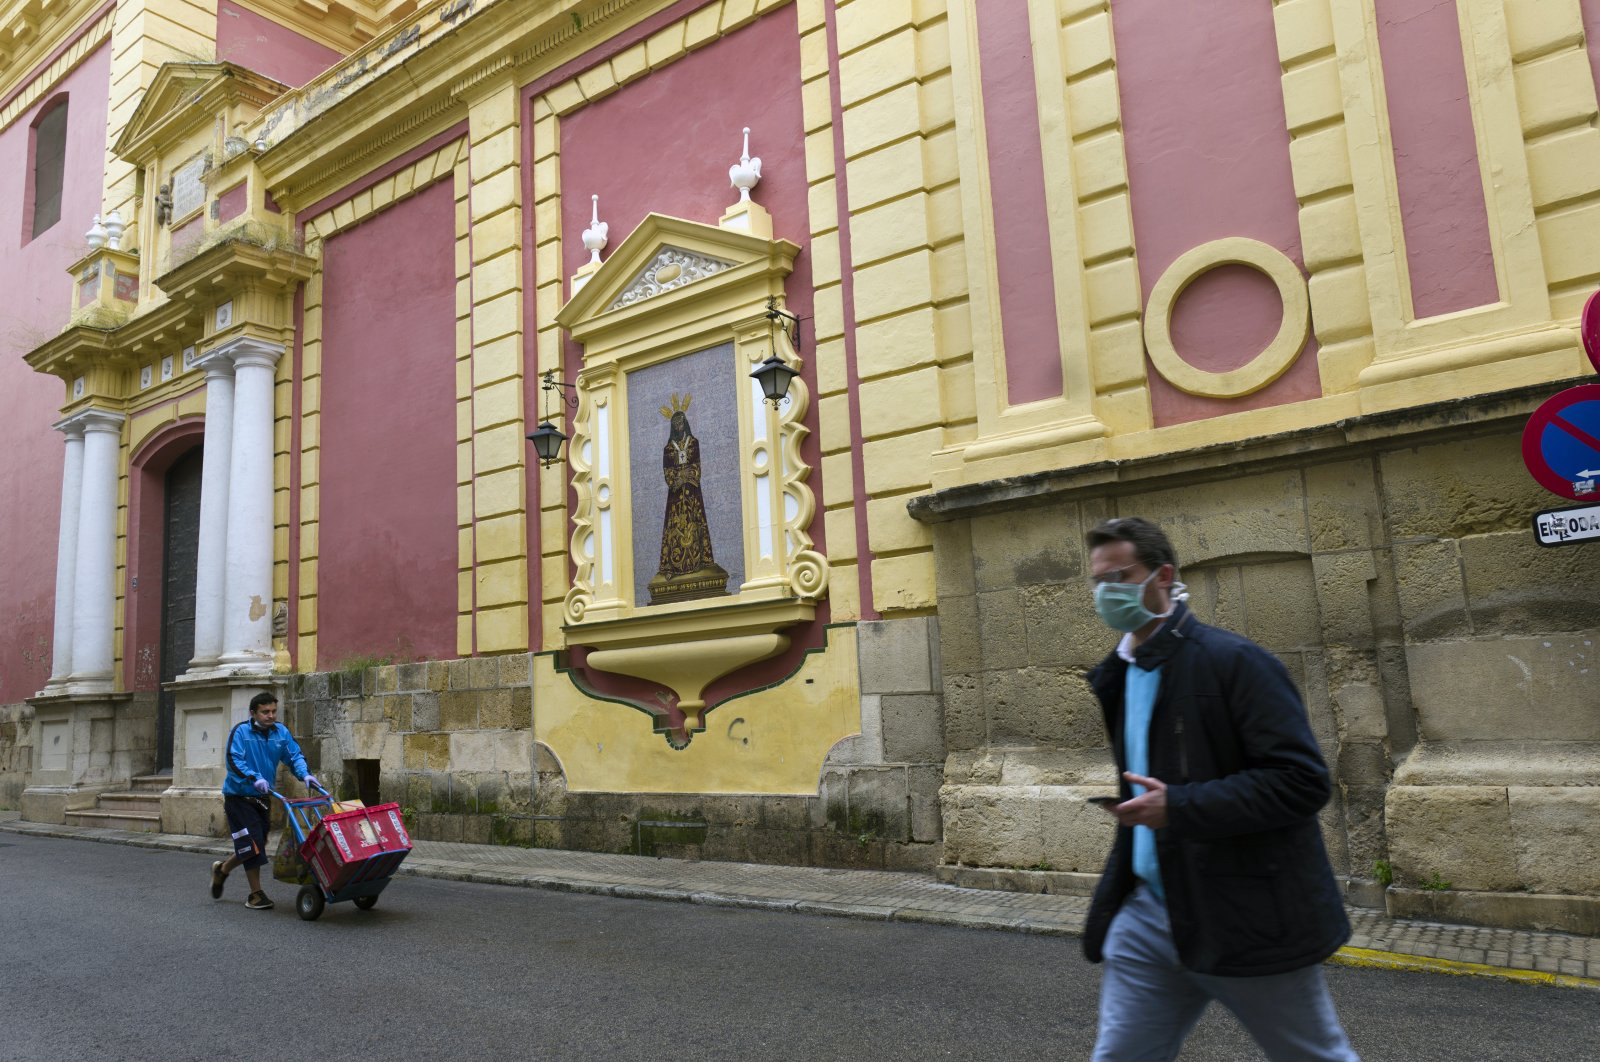 A delivery man walks past a large picture of Jesus Christ after a Holy Week procession was canceled due to the coronavirus outbreak in Seville, Spain, Tuesday, April 7, 2020. (AP Photo)